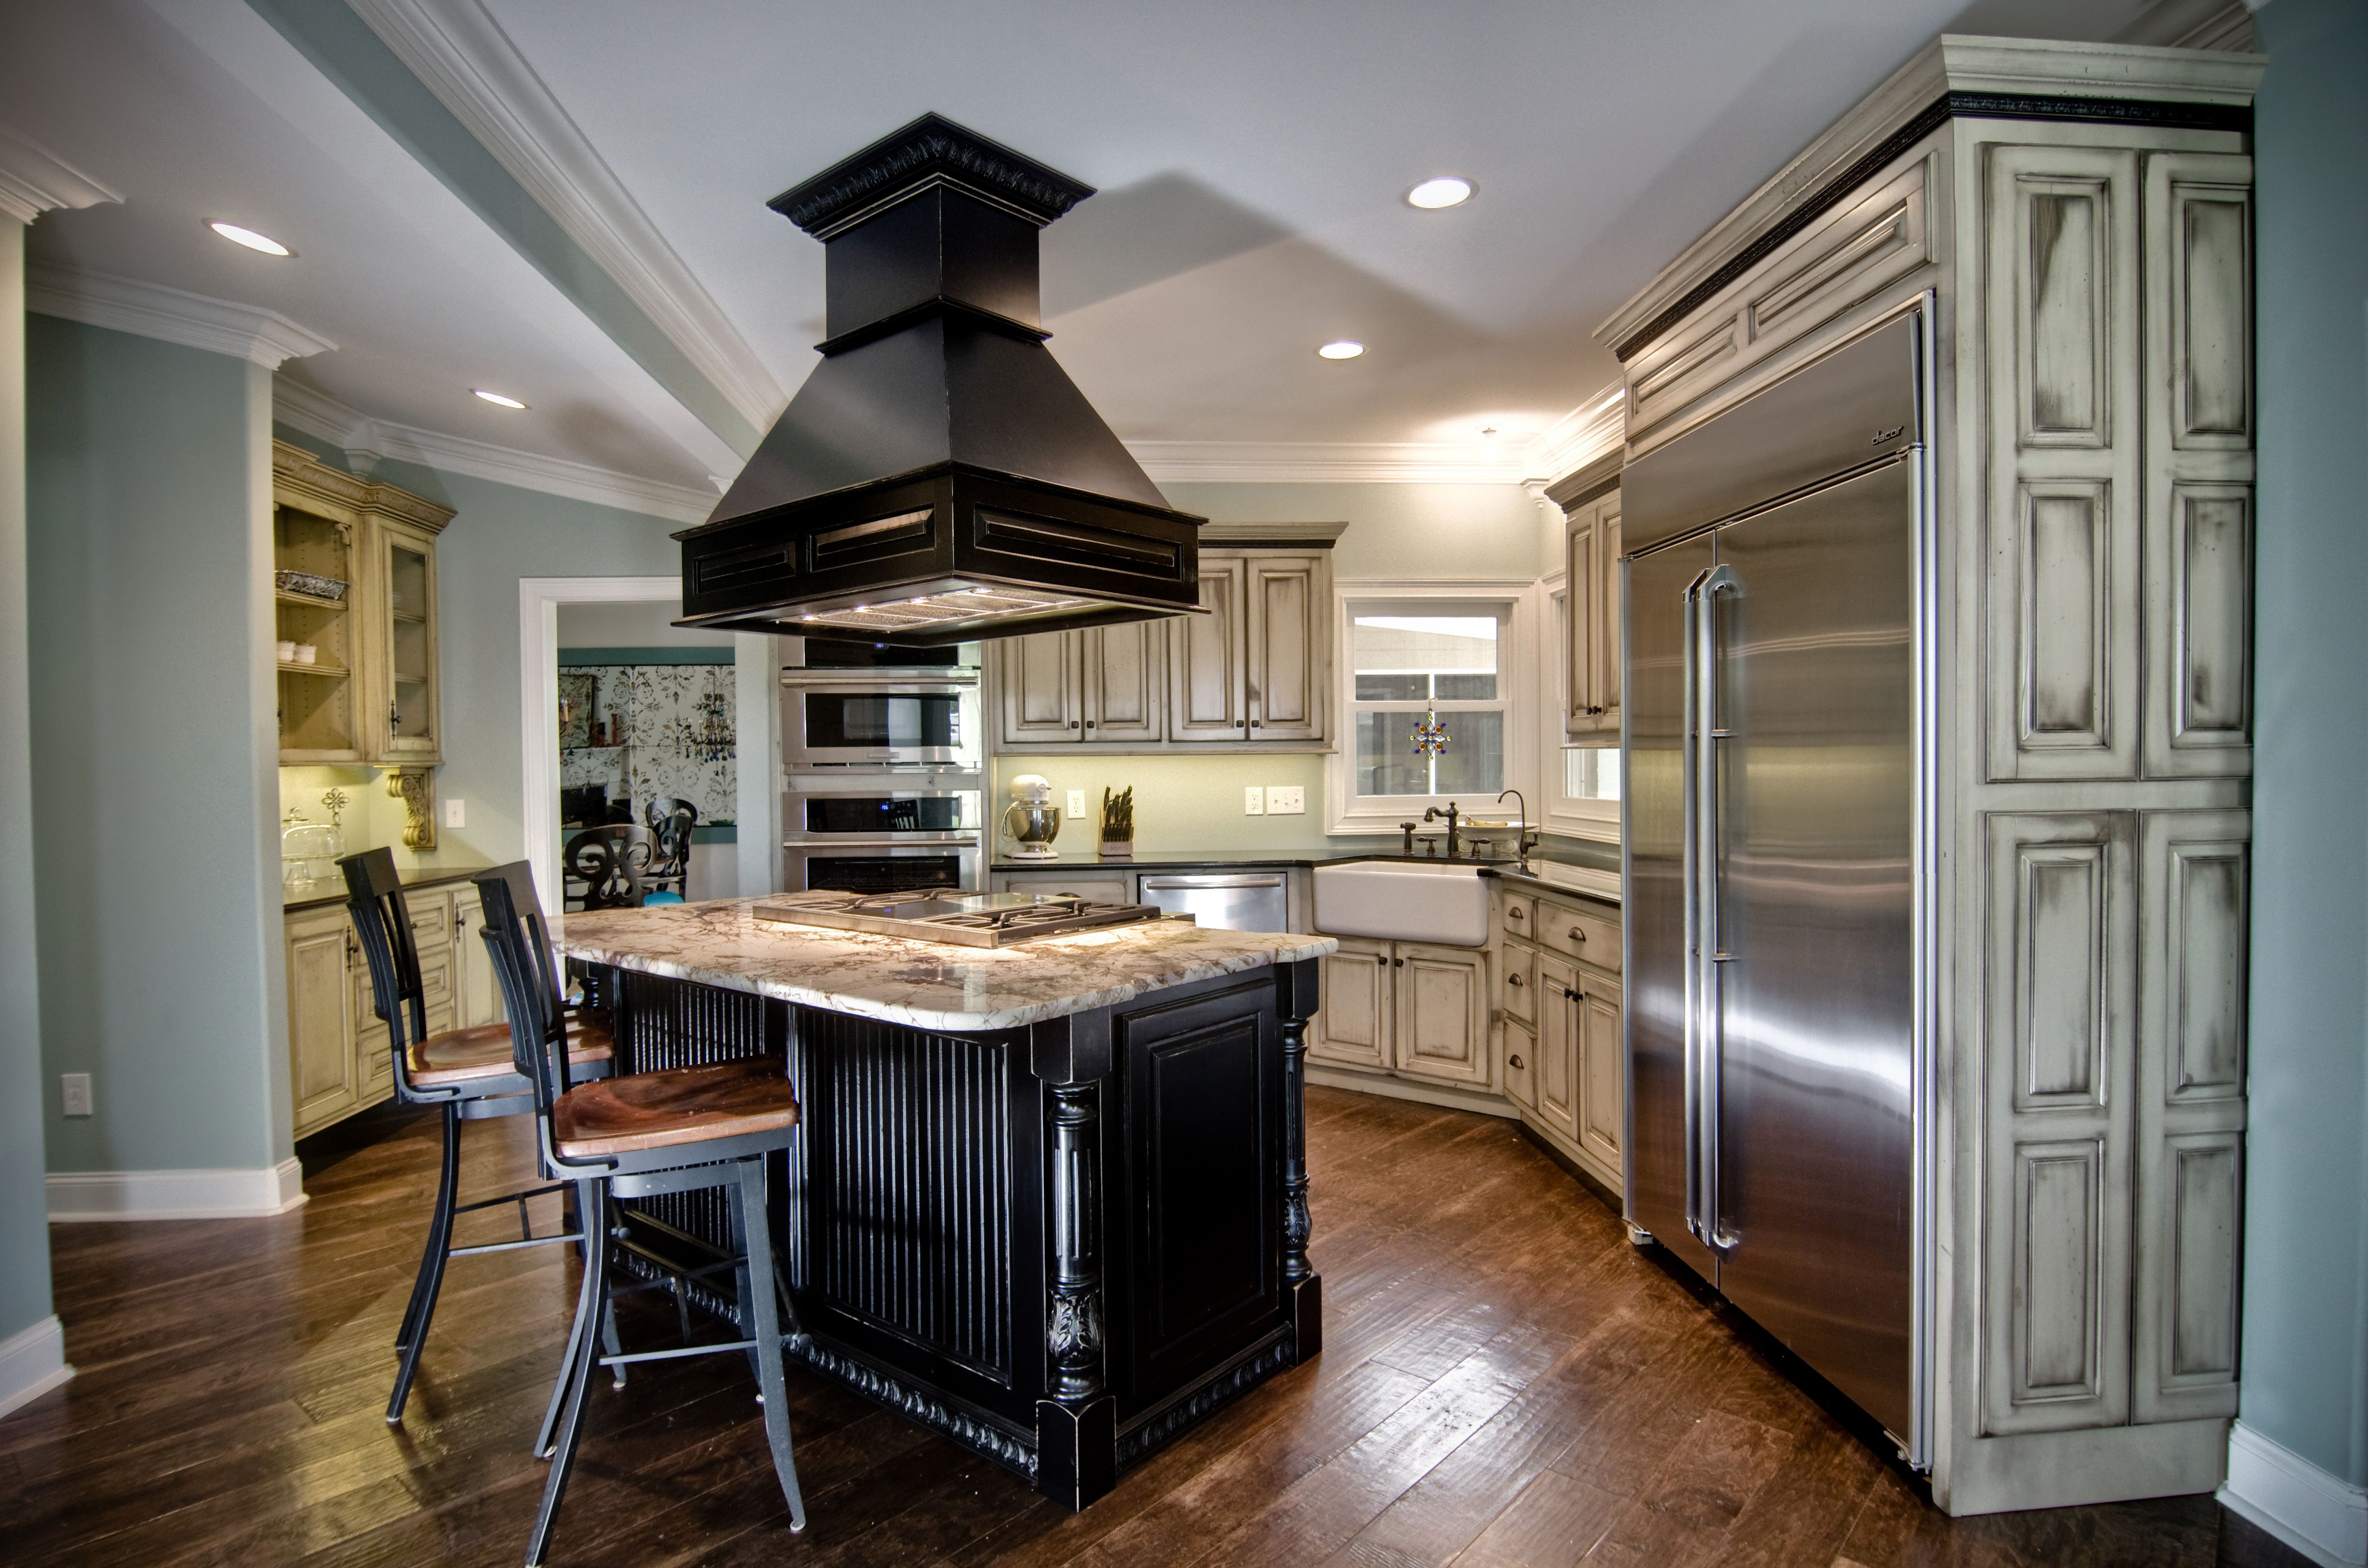 Rustic Painted And Glazed Finish Used On Main Kitchen Cabinetry